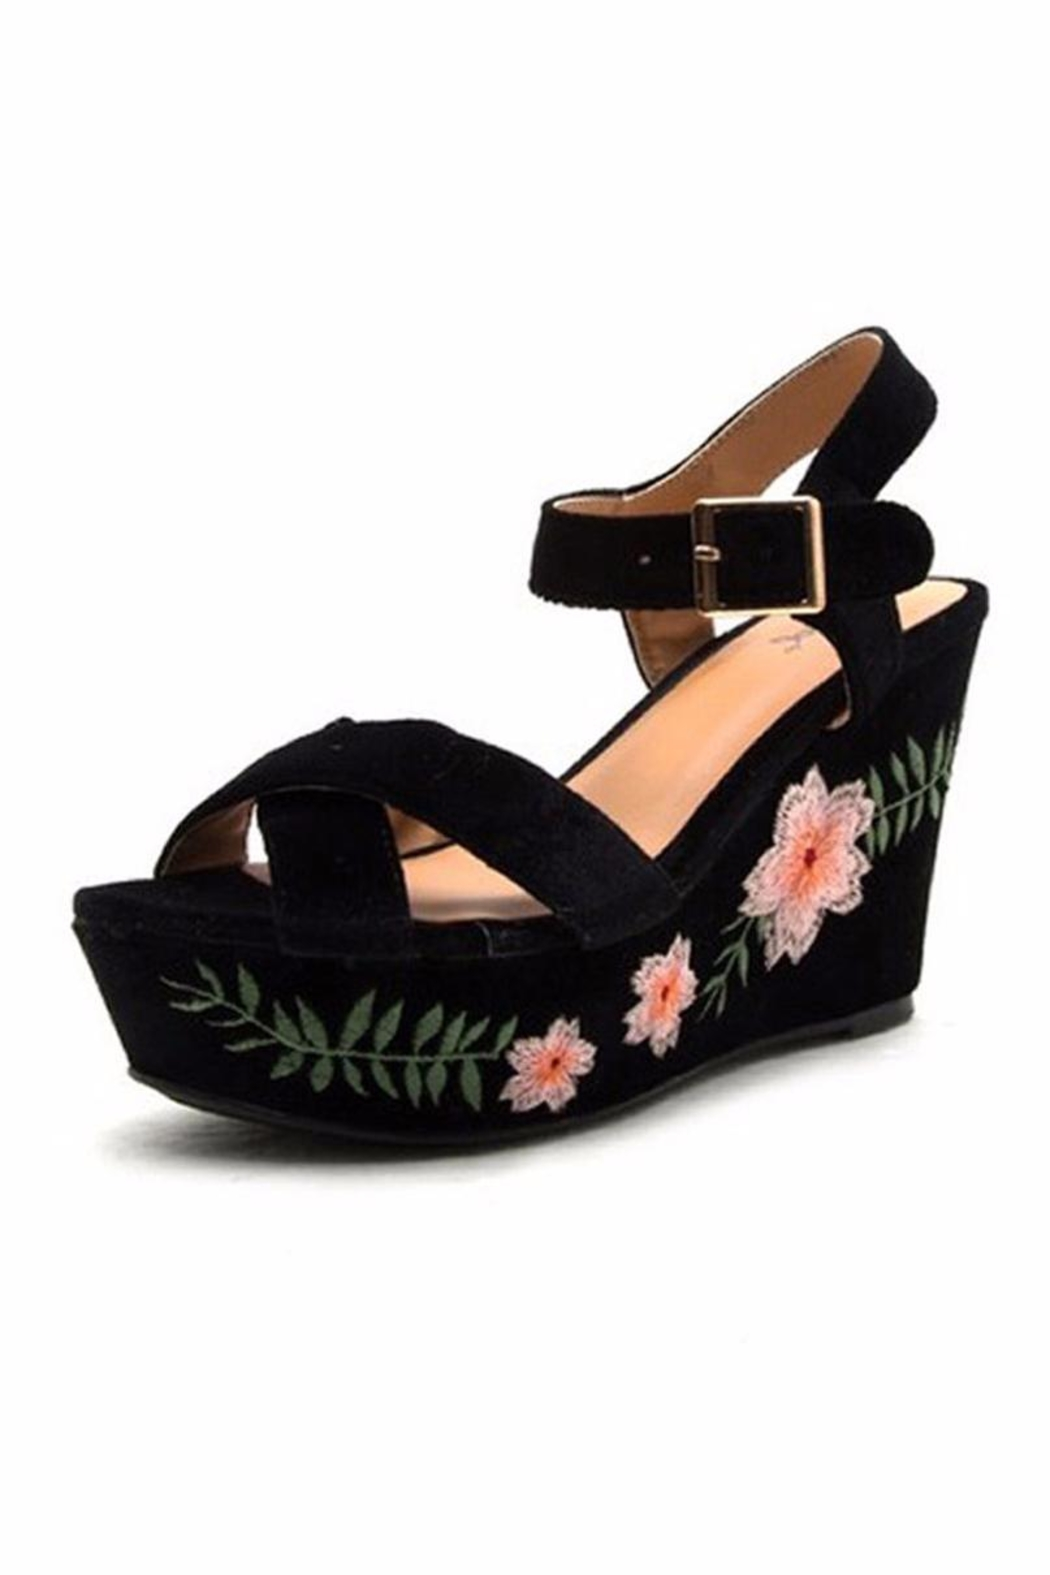 5fd9f8b86afd8d CG Shoes Floral Wedge Sandal from New York by Jamie and Maxi ...